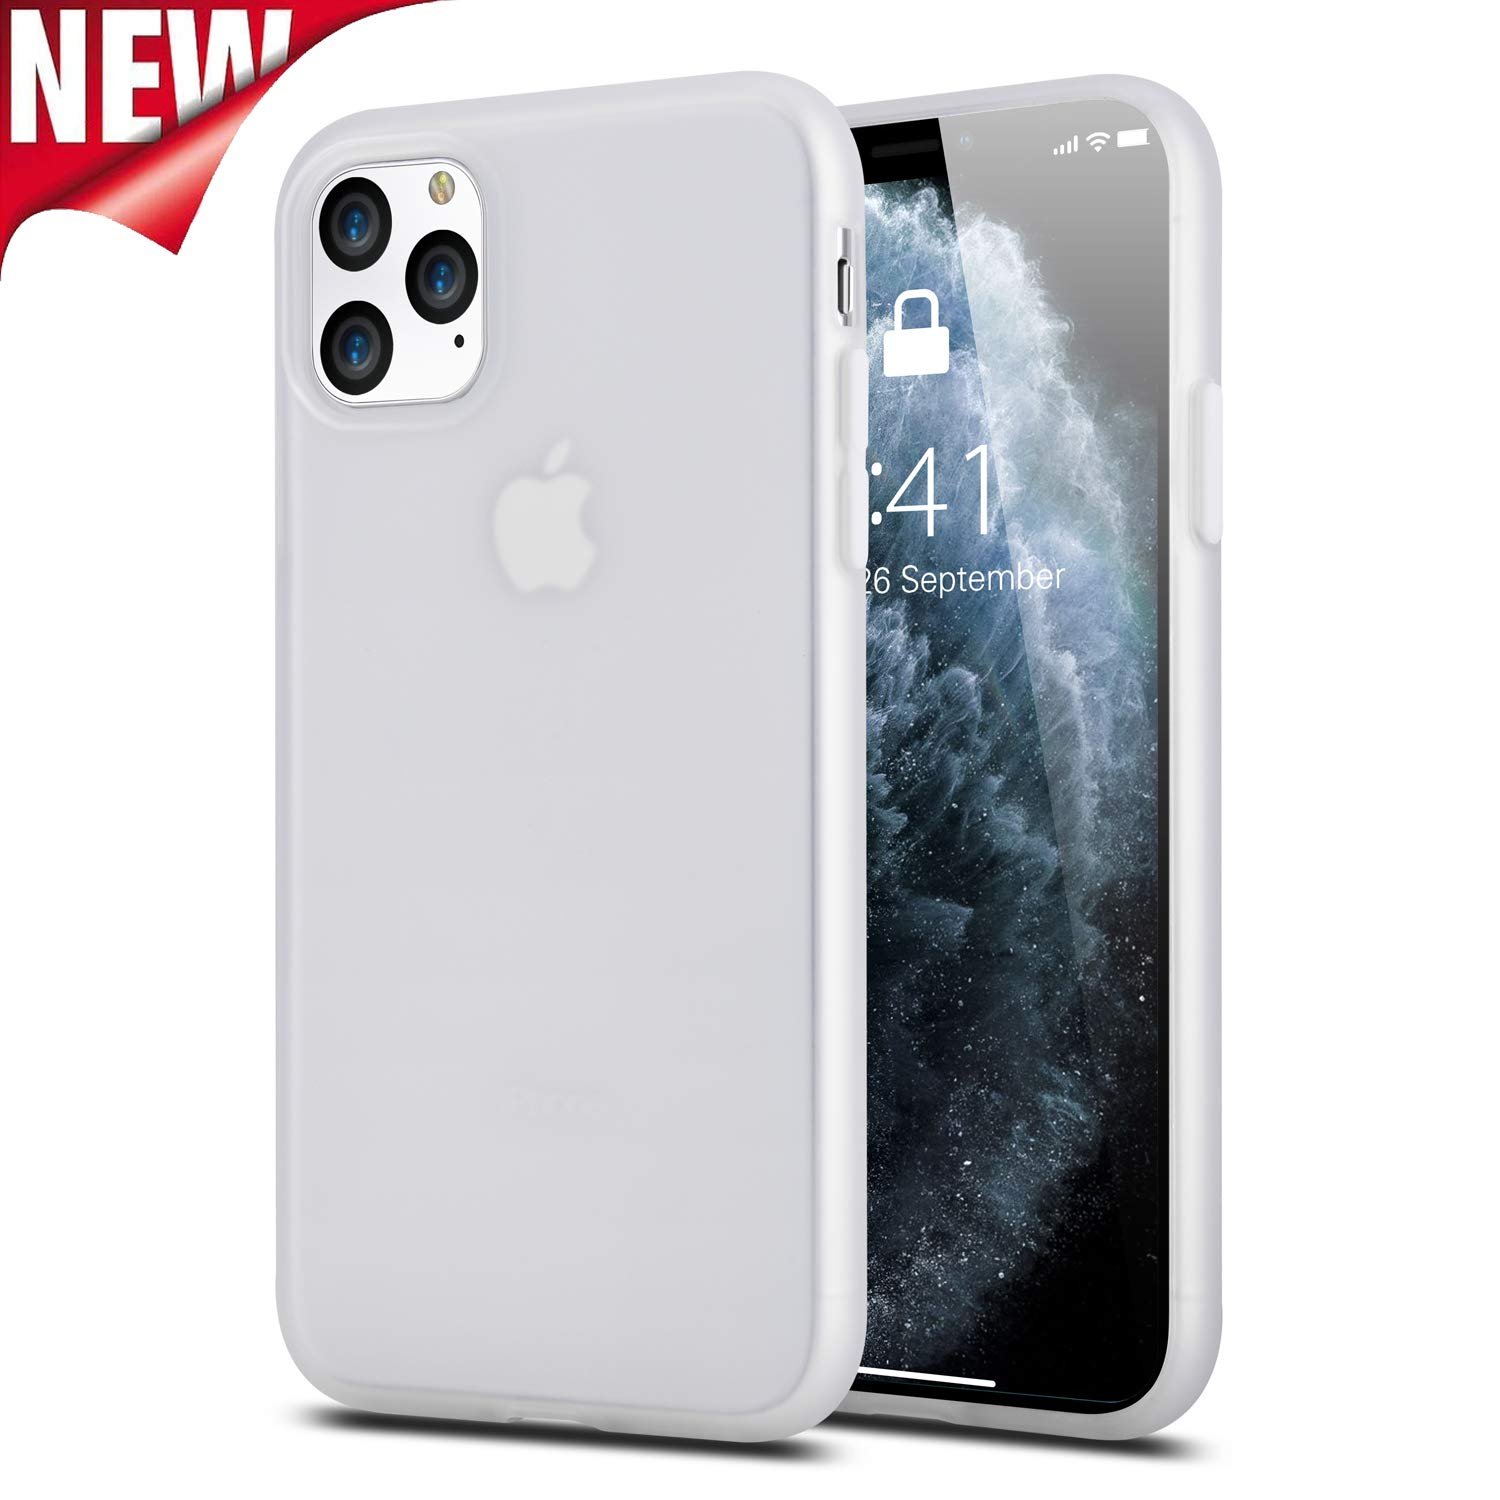 iPhone 11 Pro Max Case, Clear Matte Slim Fit Liquid Silicone Rubber Back Cover, Full-Body Shockproof Protection Non-Slip Anti-Yellow Thin Protective Phone Case for iPhone 11 Pro Max 6.5 2019, White